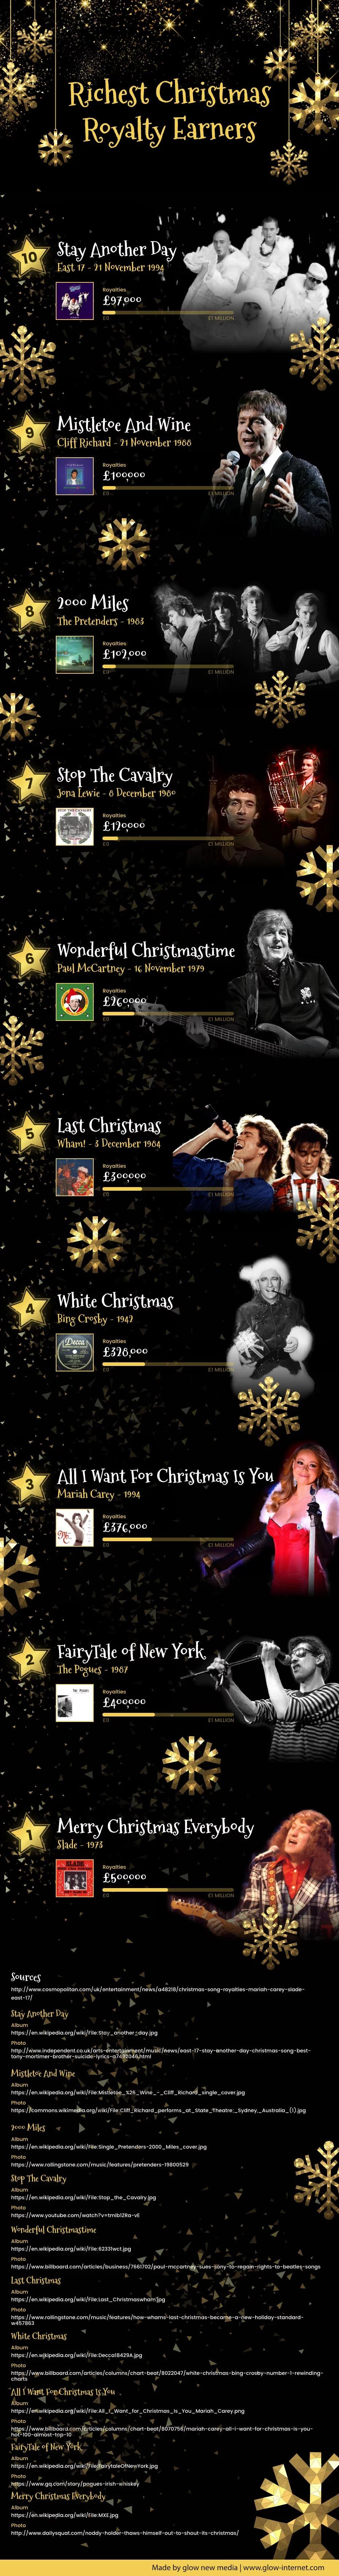 Best Uk Christmas Songs Christmas Infographic Infographic Best Christmas Songs